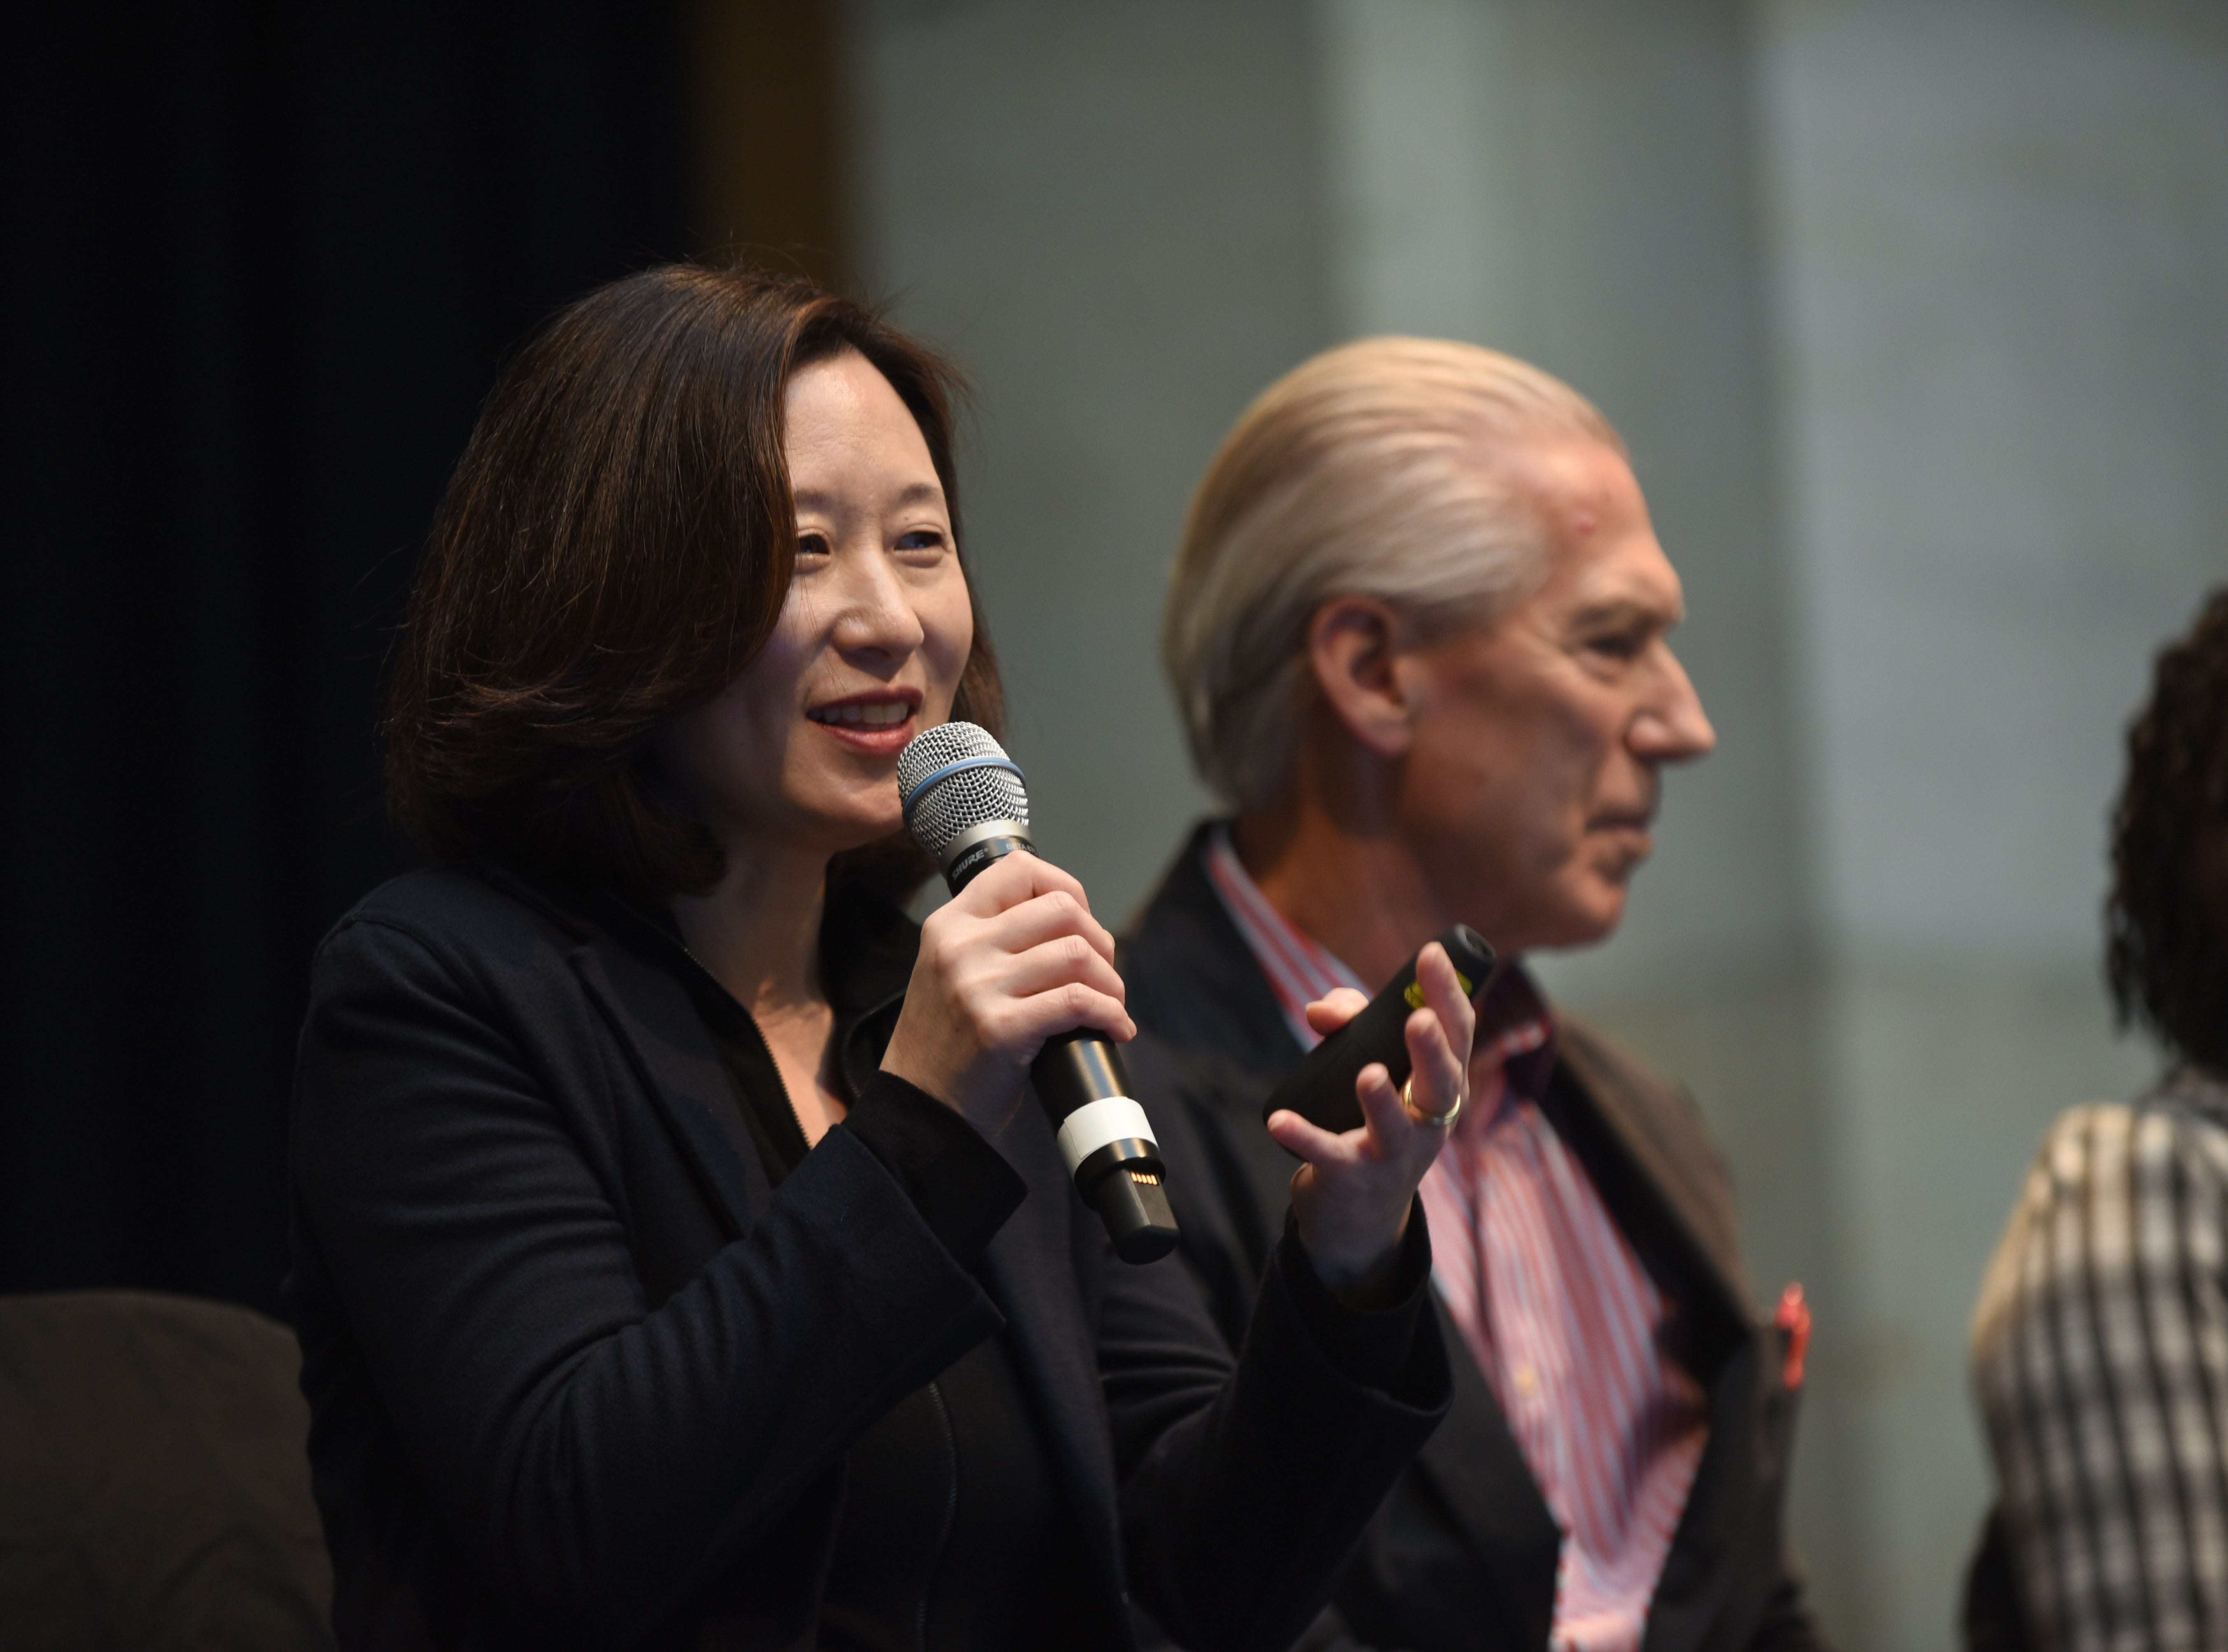 Mikyoung Kim (left), of Mikyoung Kim Design, along with Jamie Carpenter, of James Carpenter Design Associates,  address a jury panel on Wednesday, January 23, 2019.